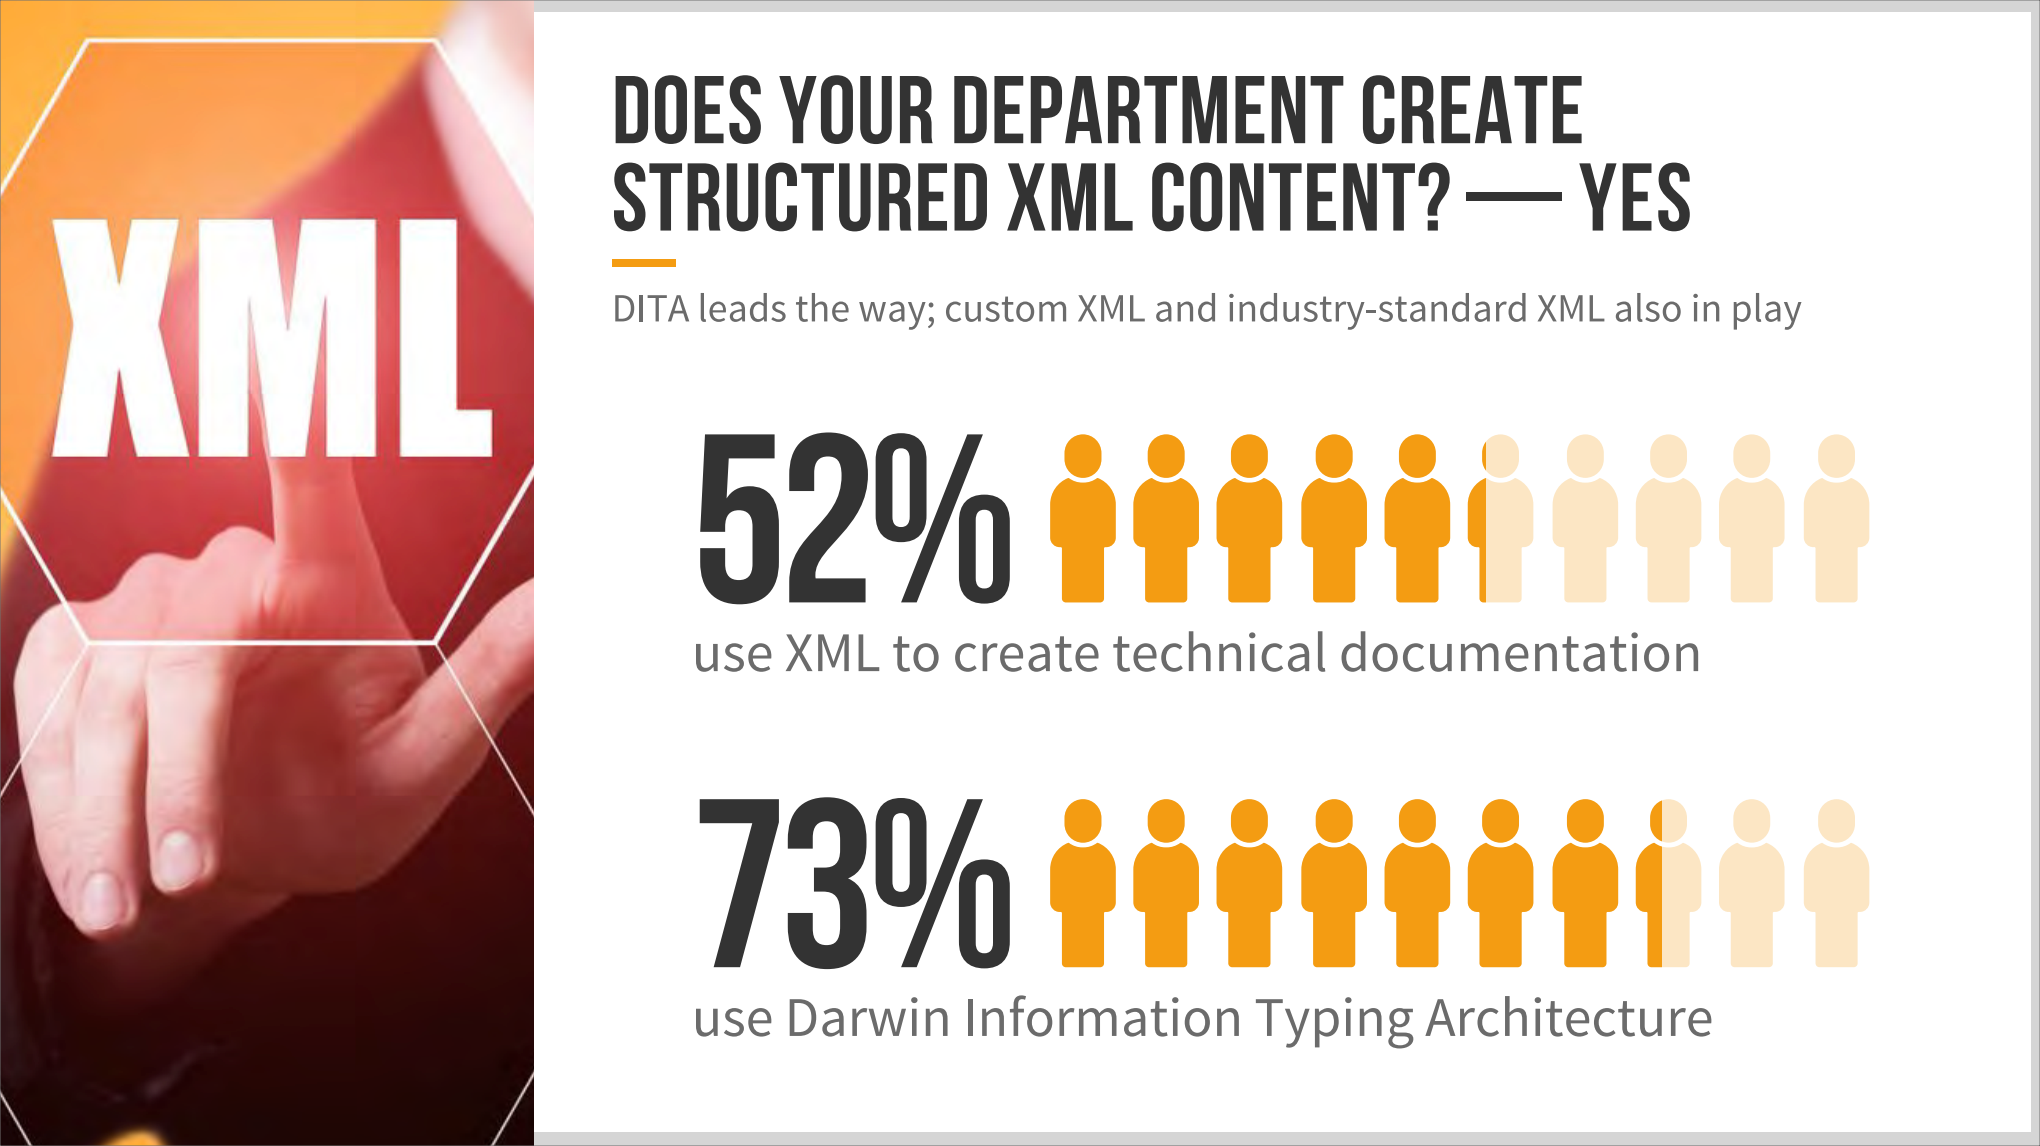 XML usage and tools